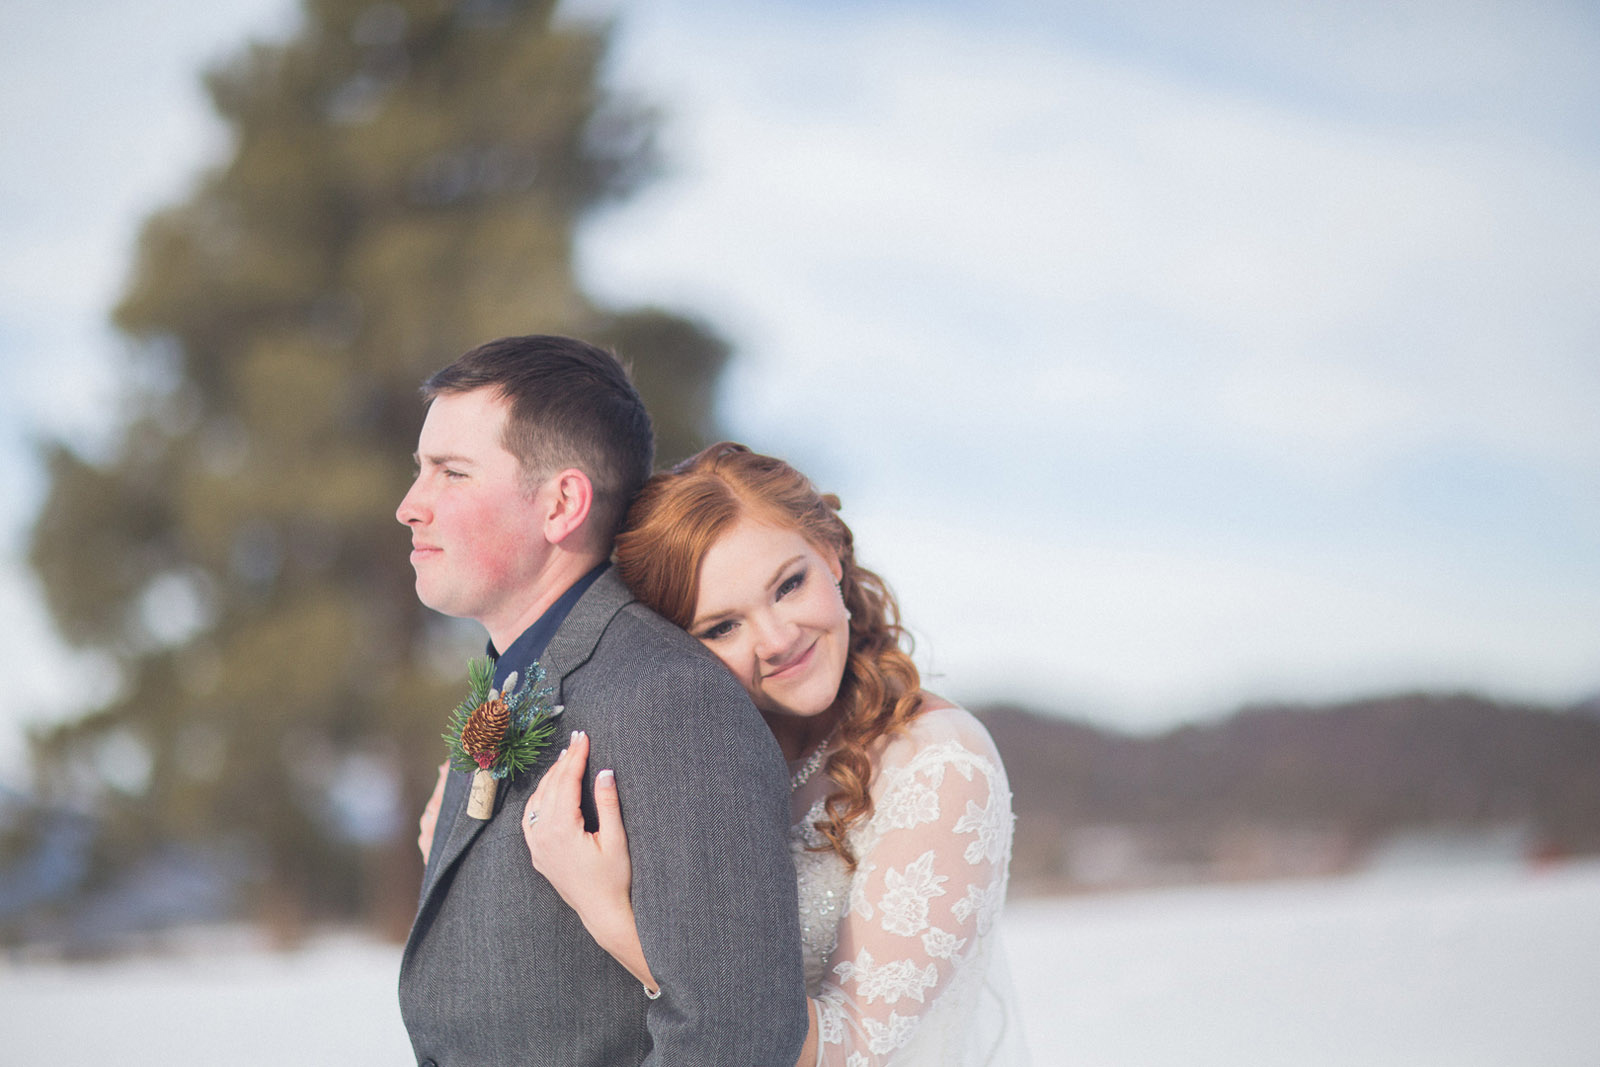 140-wedding-photographer-captures-newlyweds-in-snow-during-a-winter-snow-wedding-in-the-mountains-in-colorado